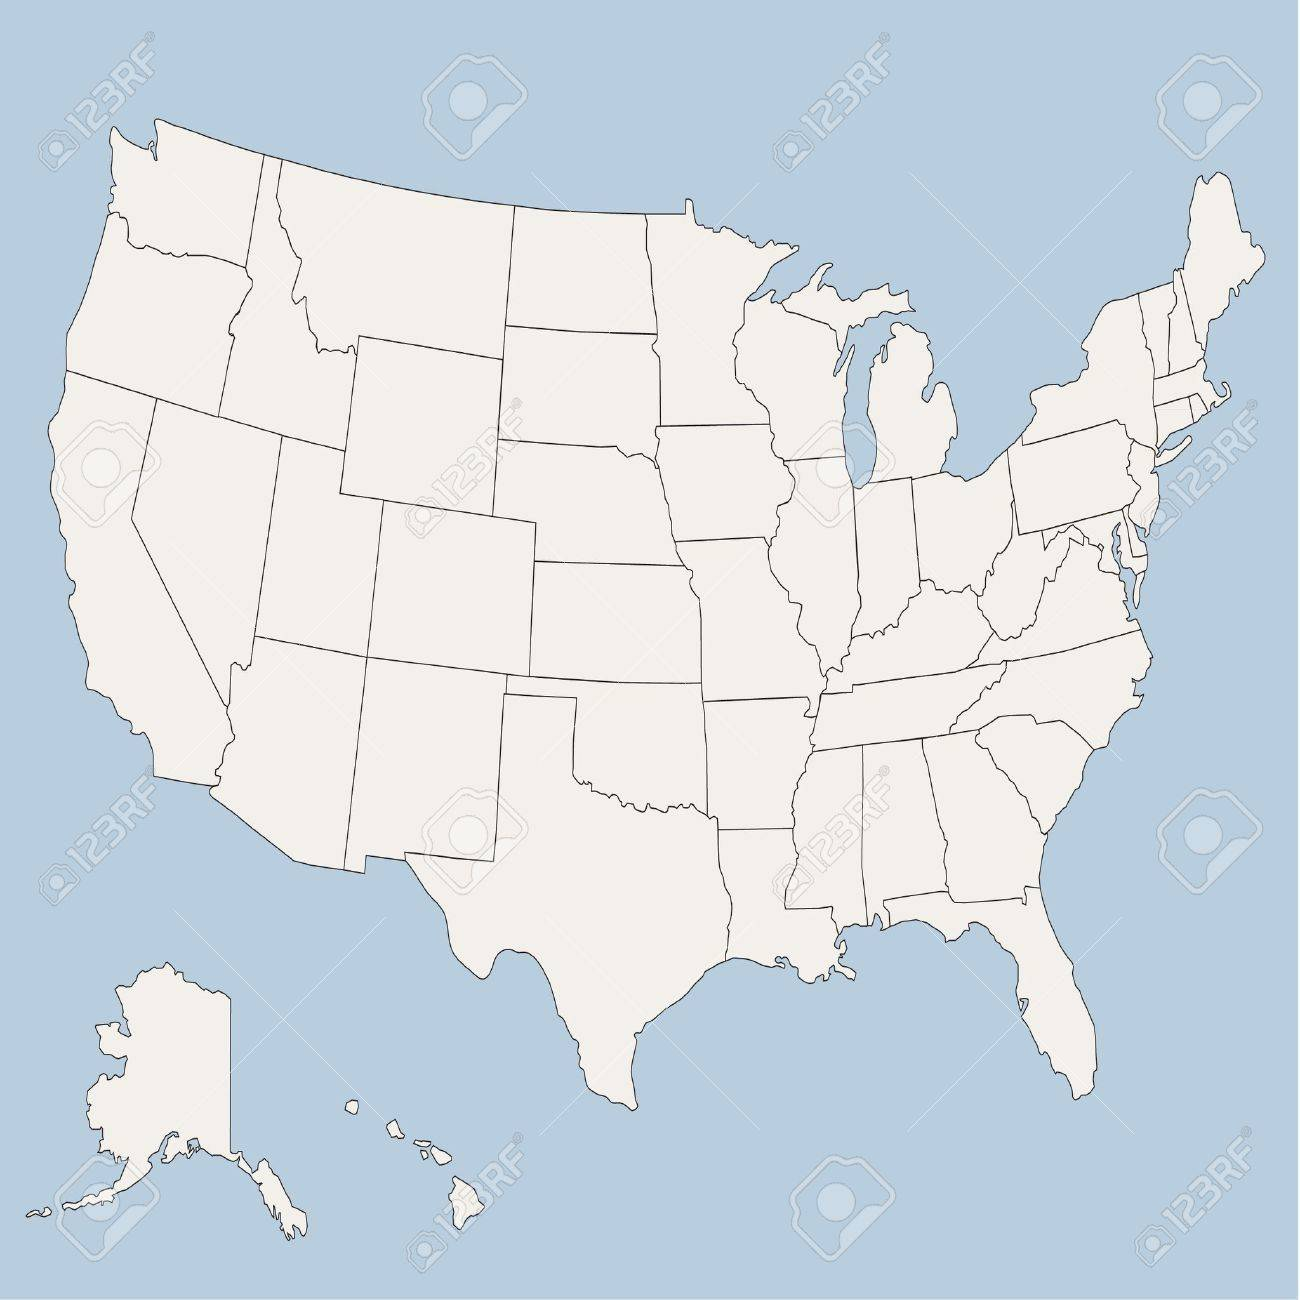 map of the united states of america Stock Vector - 10735083